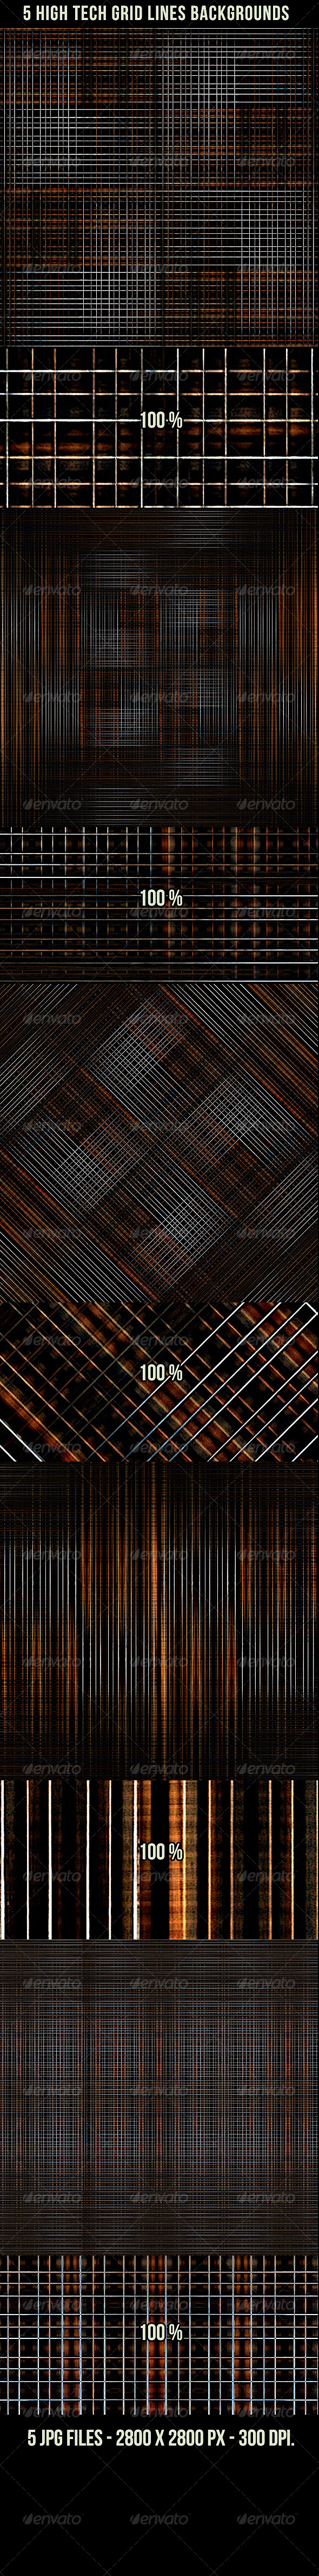 5 High Tech Grid Lines Backgrounds - Tech / Futuristic Backgrounds